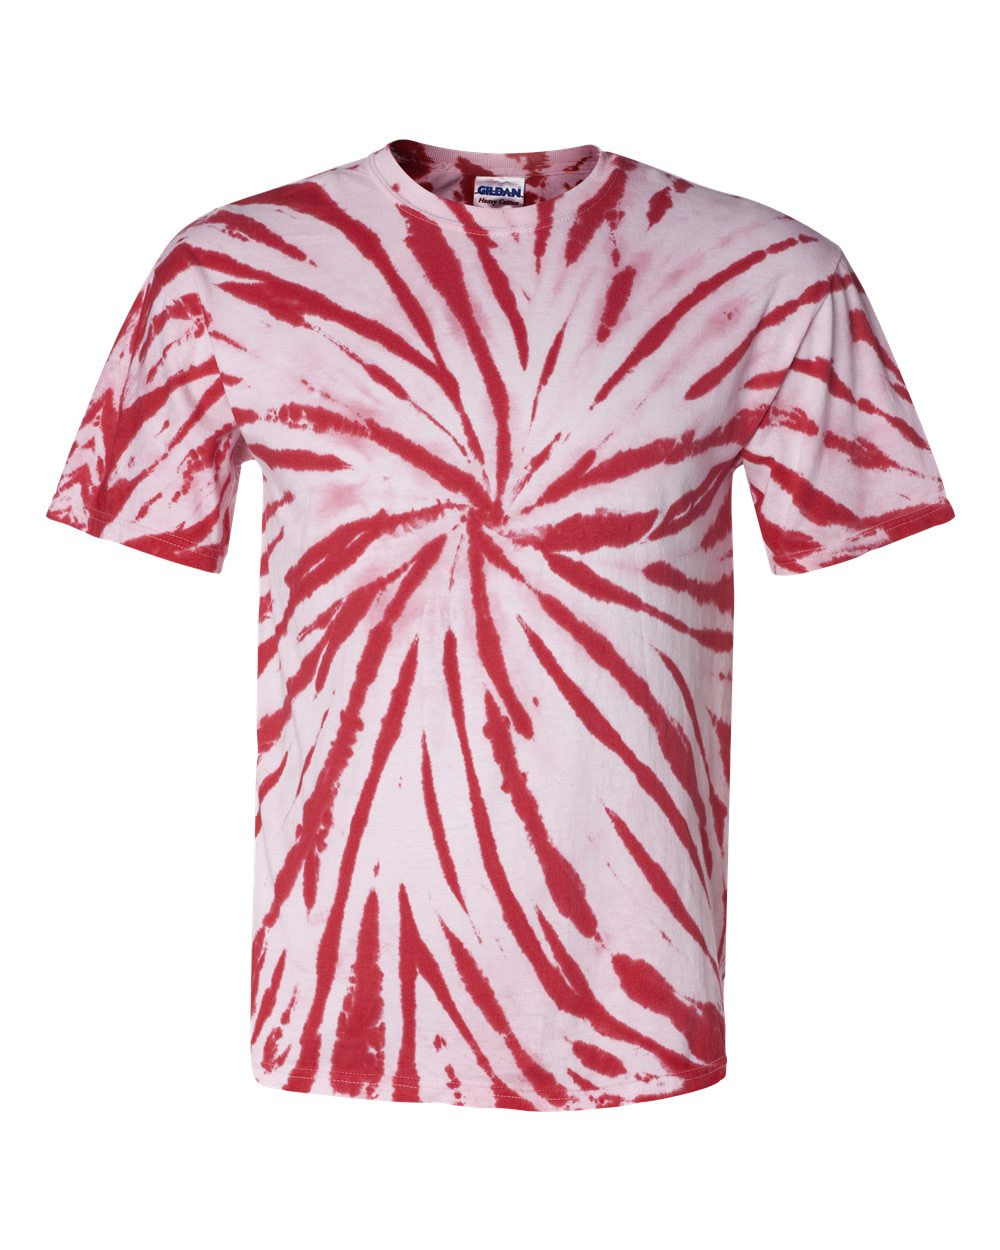 Adult Tie-Dyed Contrast Swirl T-Shirt